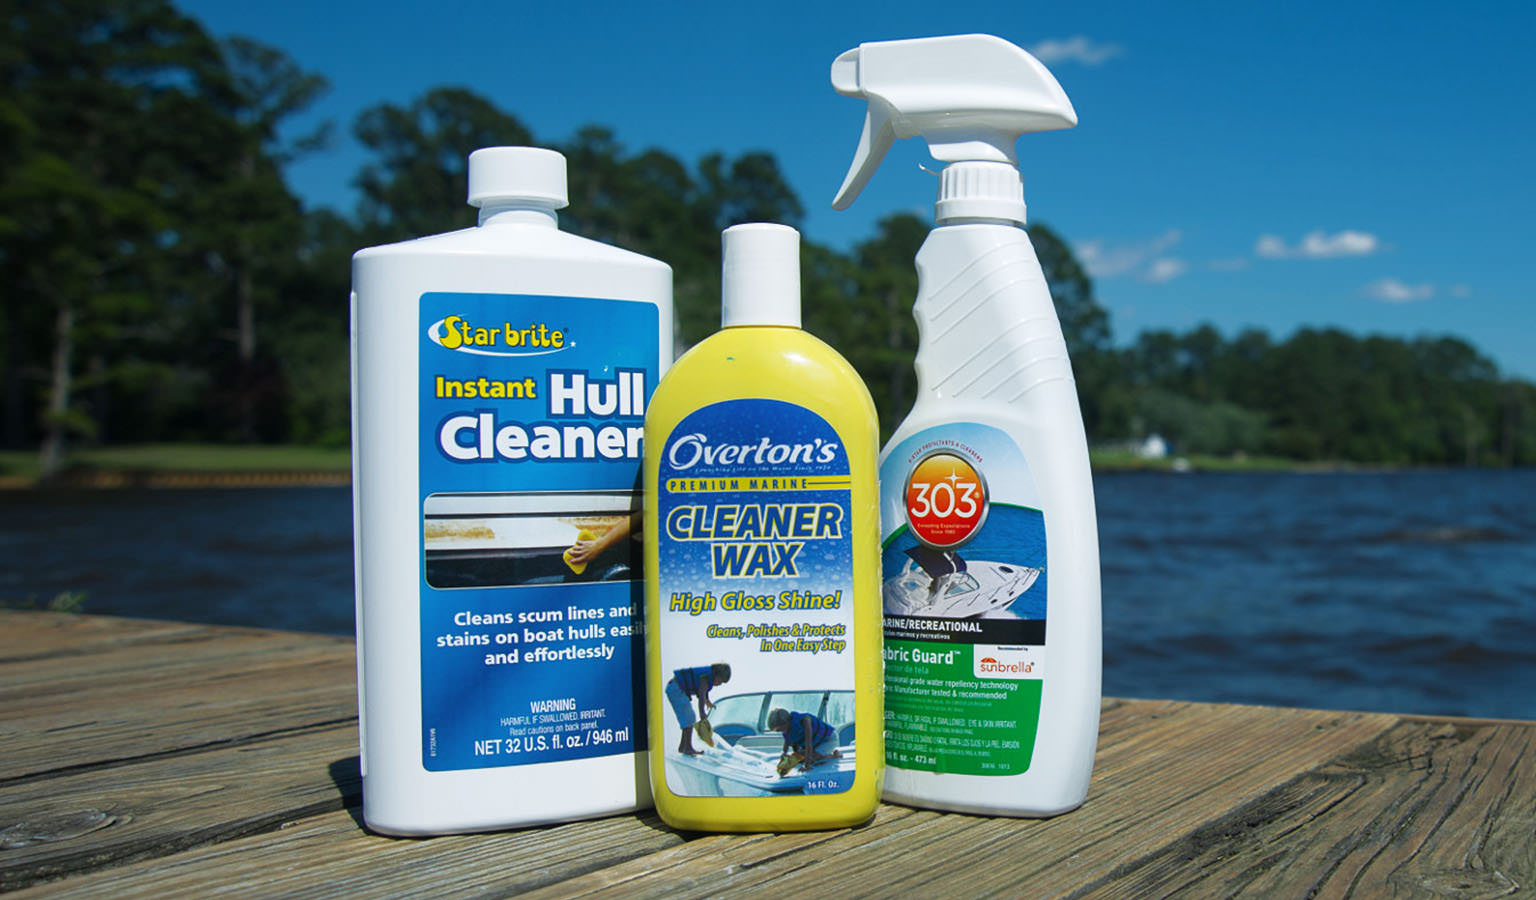 Shop up to 30% off Boat cleaners & supplies